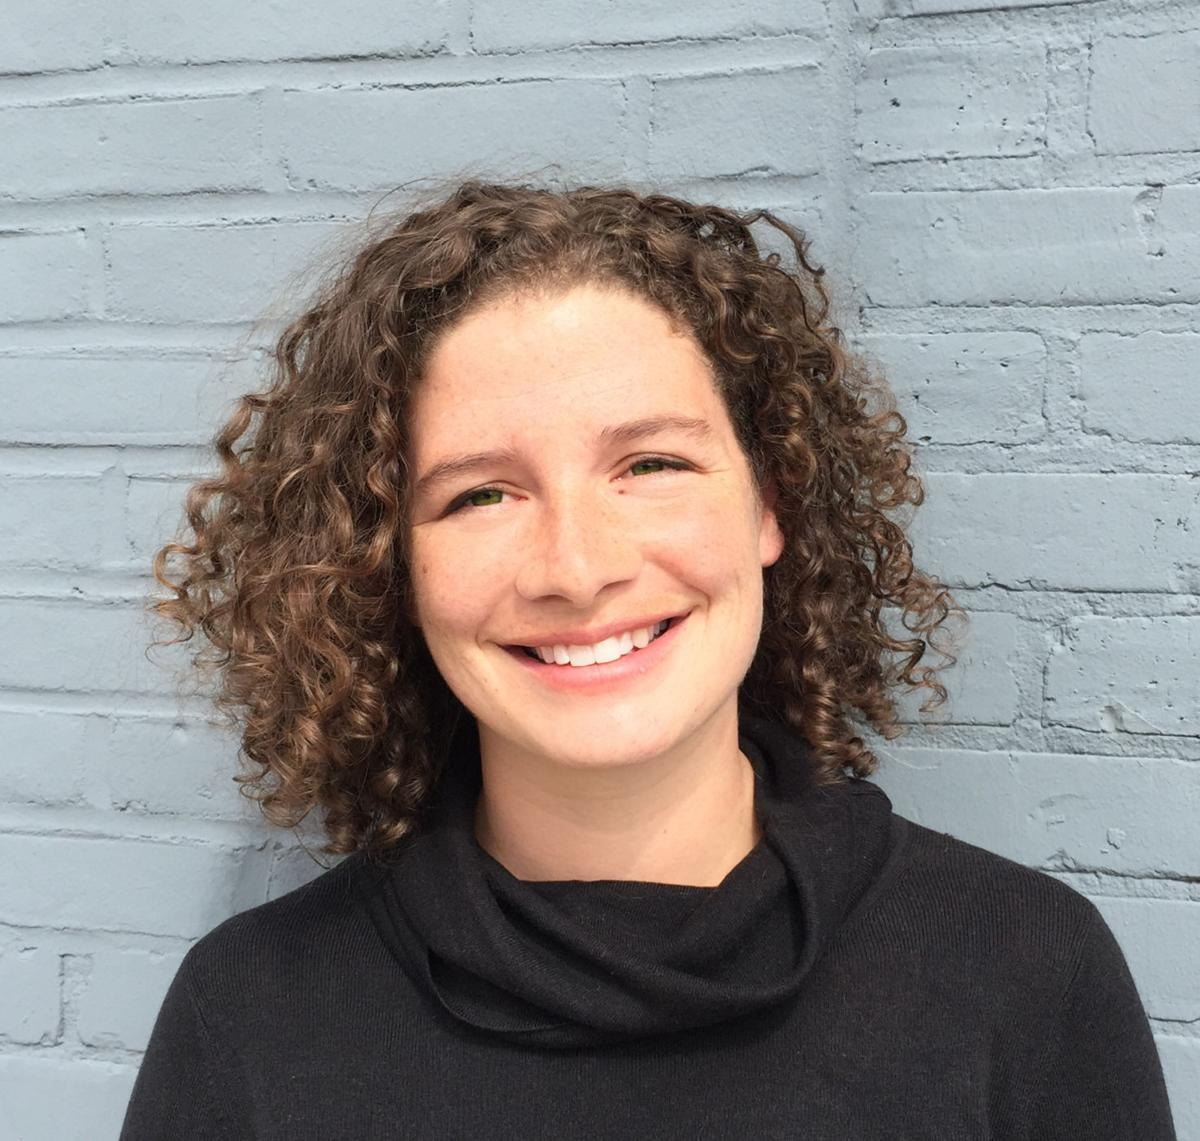 Industrial design professor Betsy Barnhart smiles as she stands in front of a wall